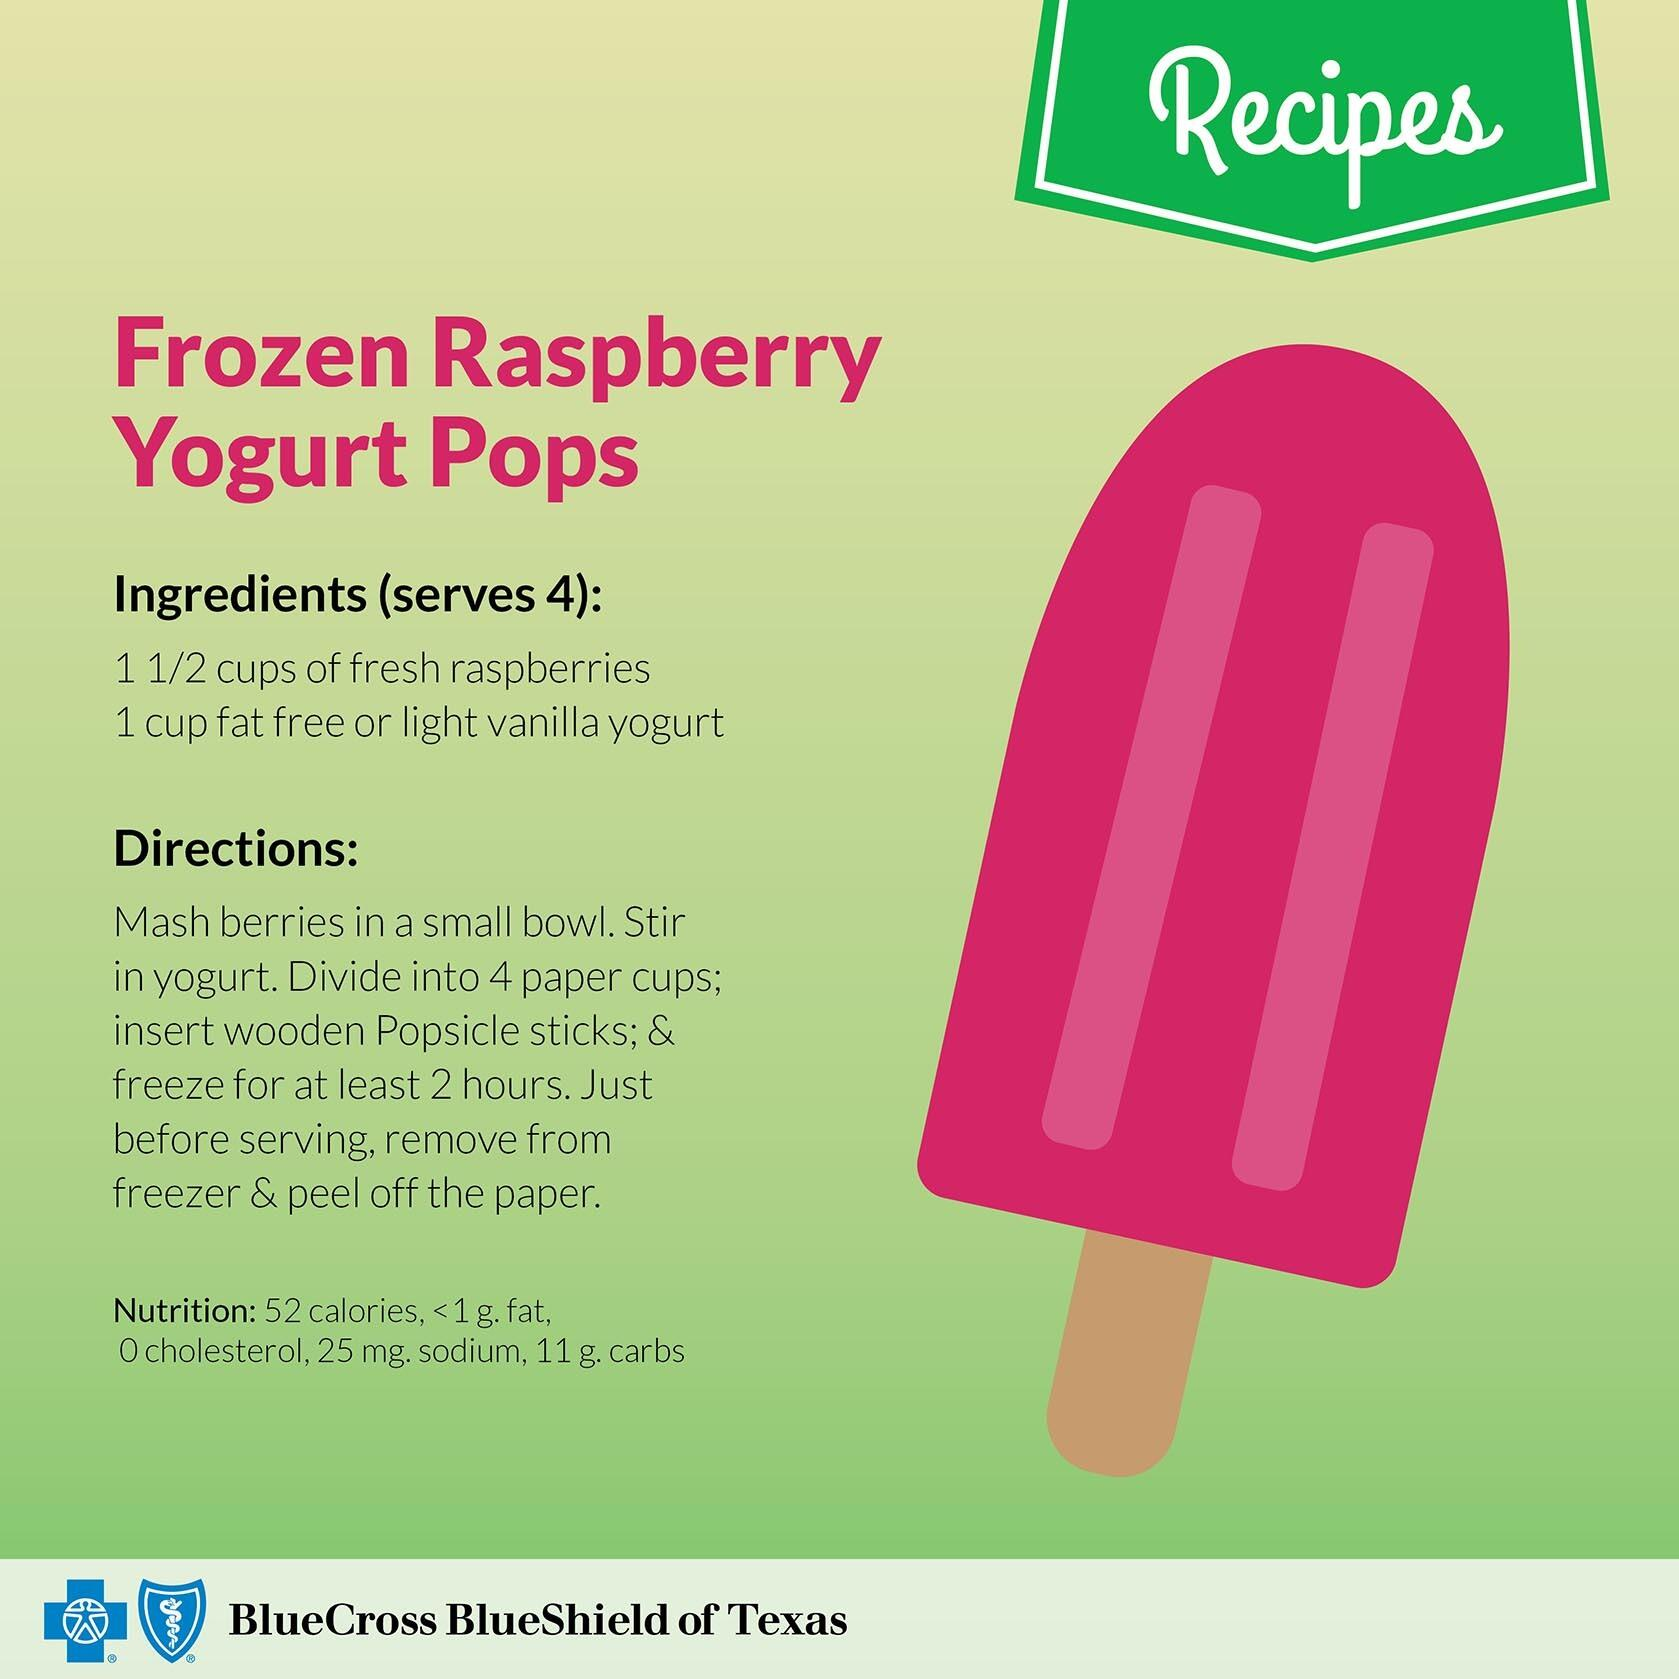 Pick your favorite berries & get the kids involved in making these super healthy, #yummy #IcePops. #Recipe http://t.co/rjZBHVuLAz